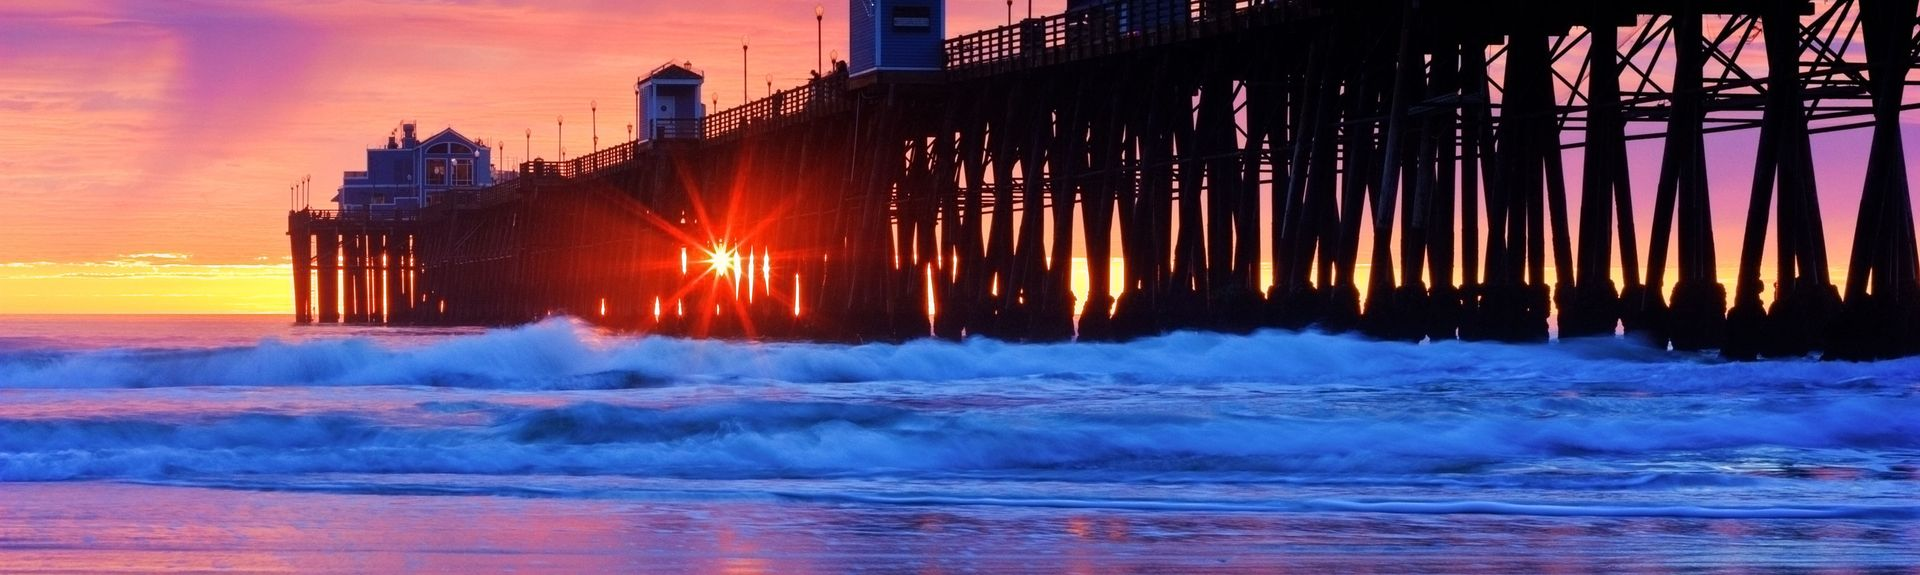 Oceanside, California, Estados Unidos